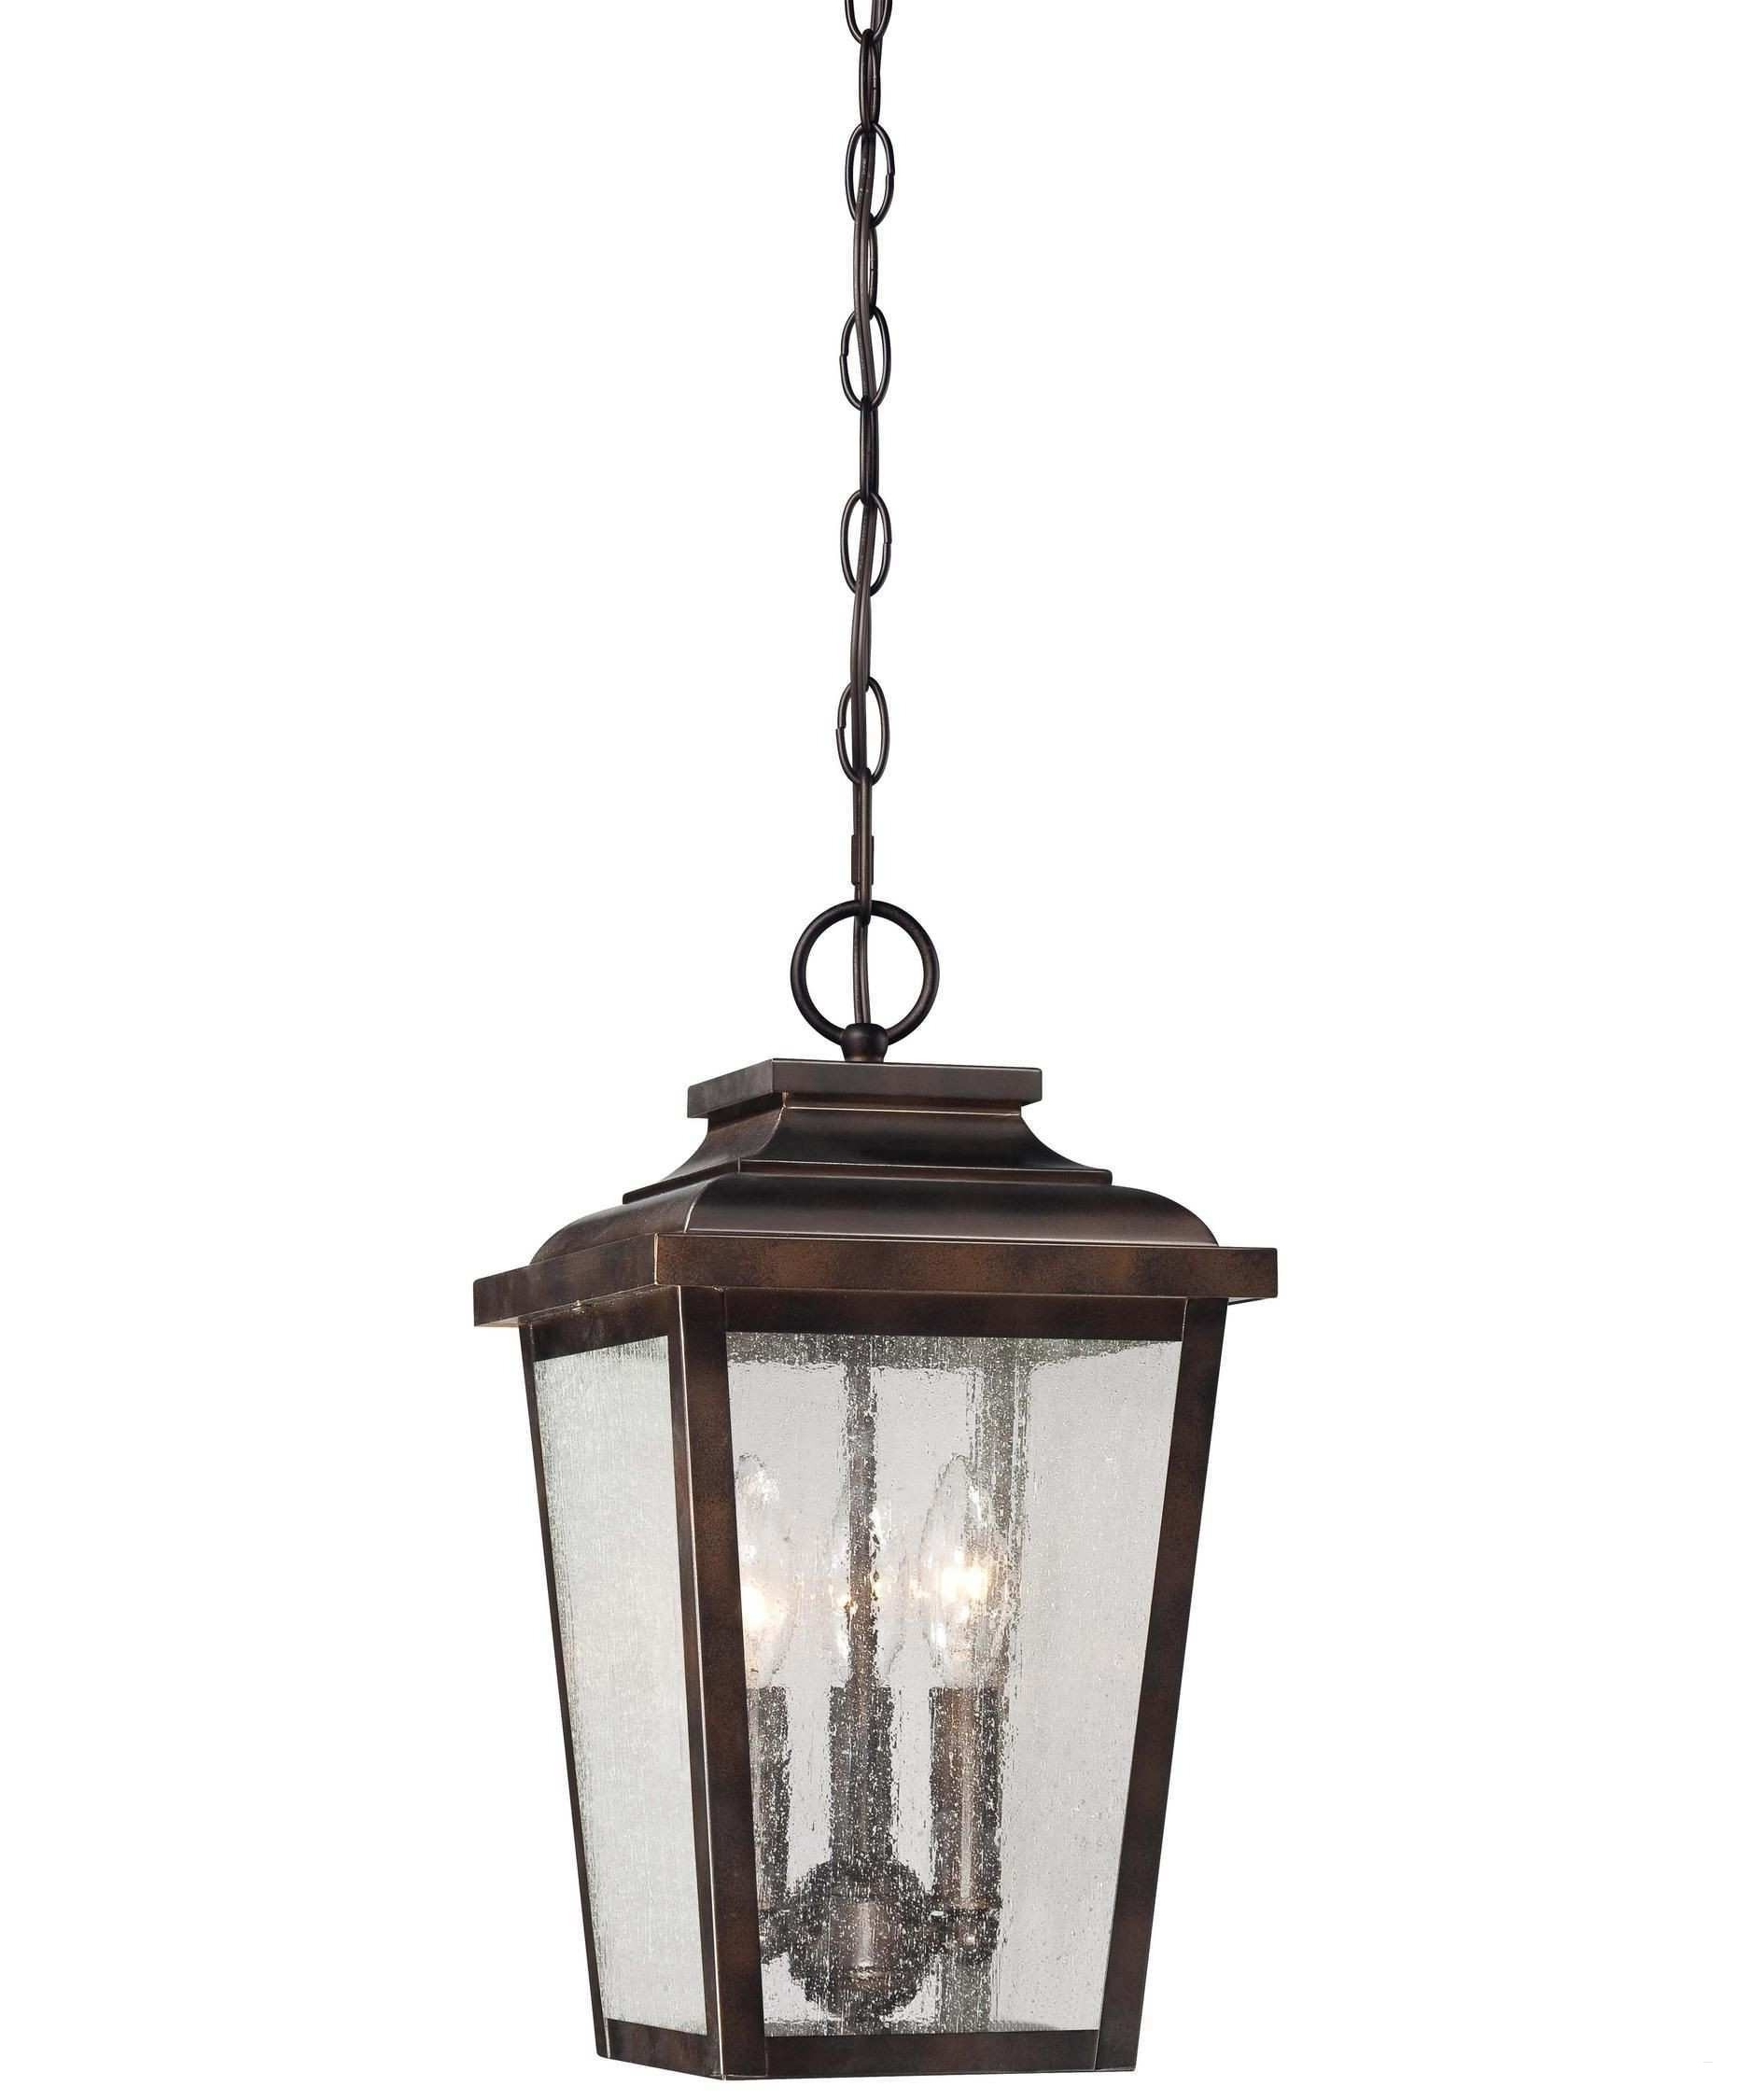 Preferred Outdoor Pendant Lights Best Of Led Pendant Light Fixtures Regarding Outdoor Pendant Lanterns (Gallery 5 of 20)